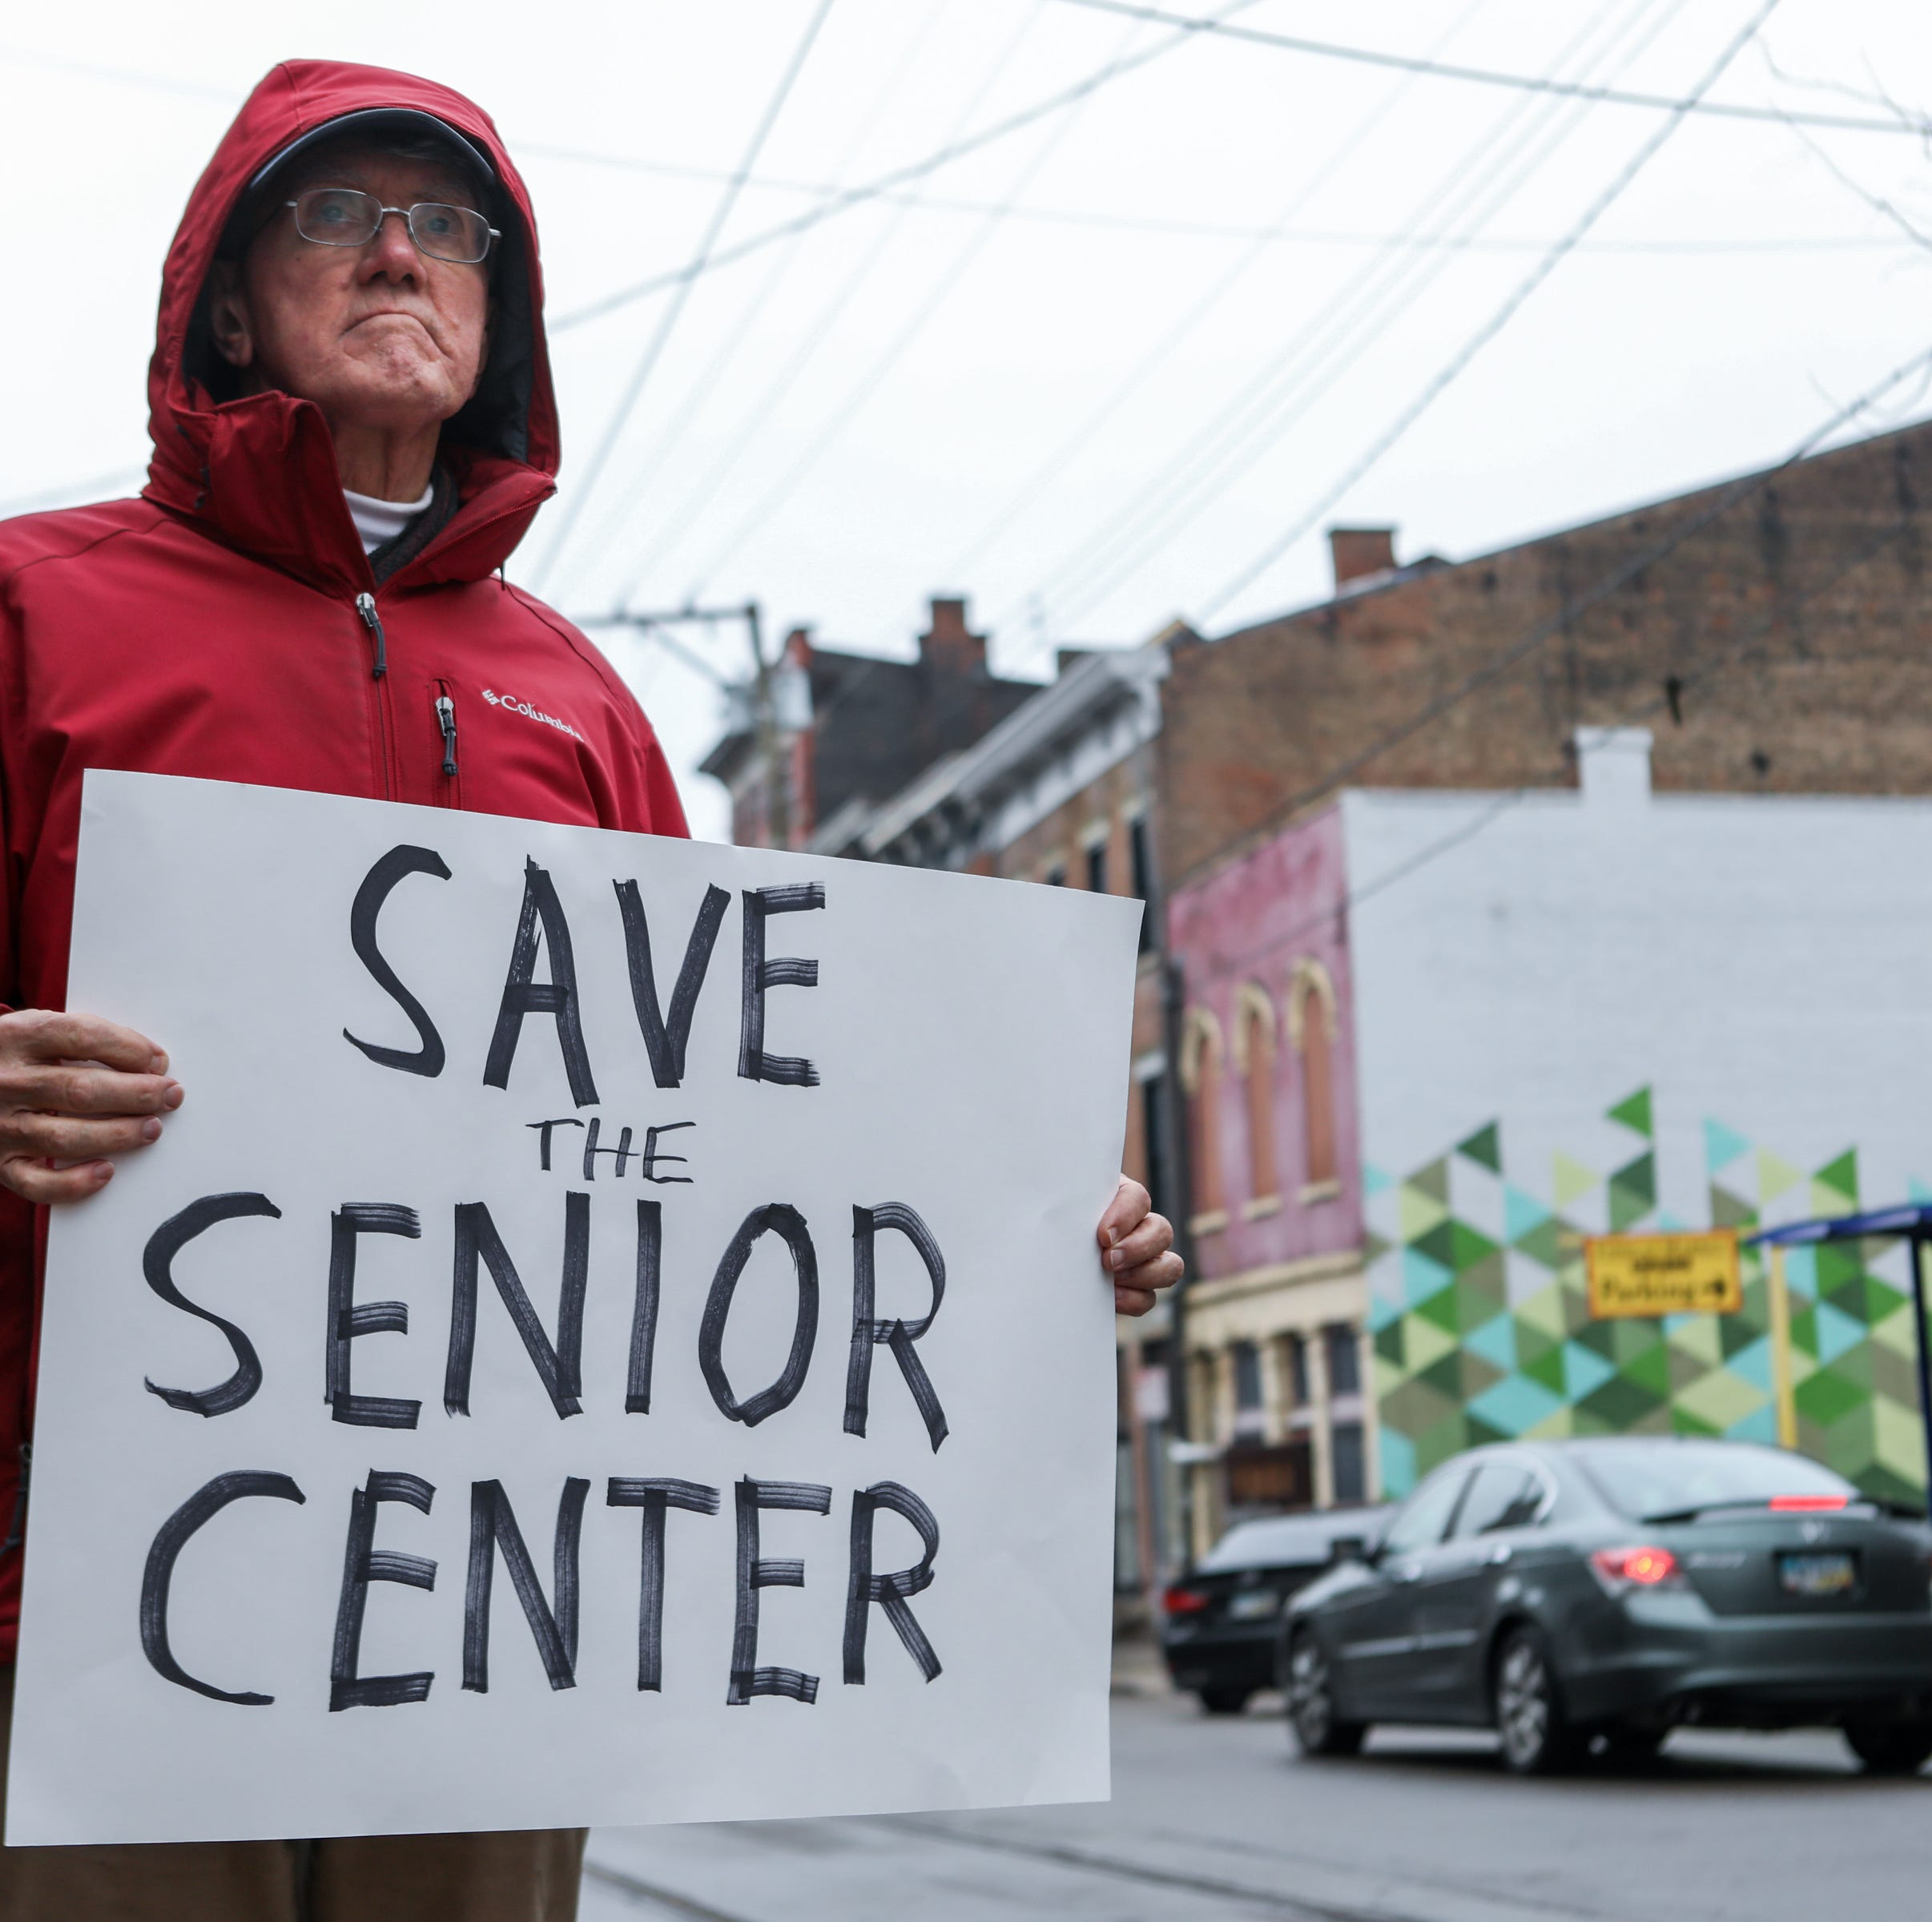 Opinion: Lack of funding for seniors deserves greater attention